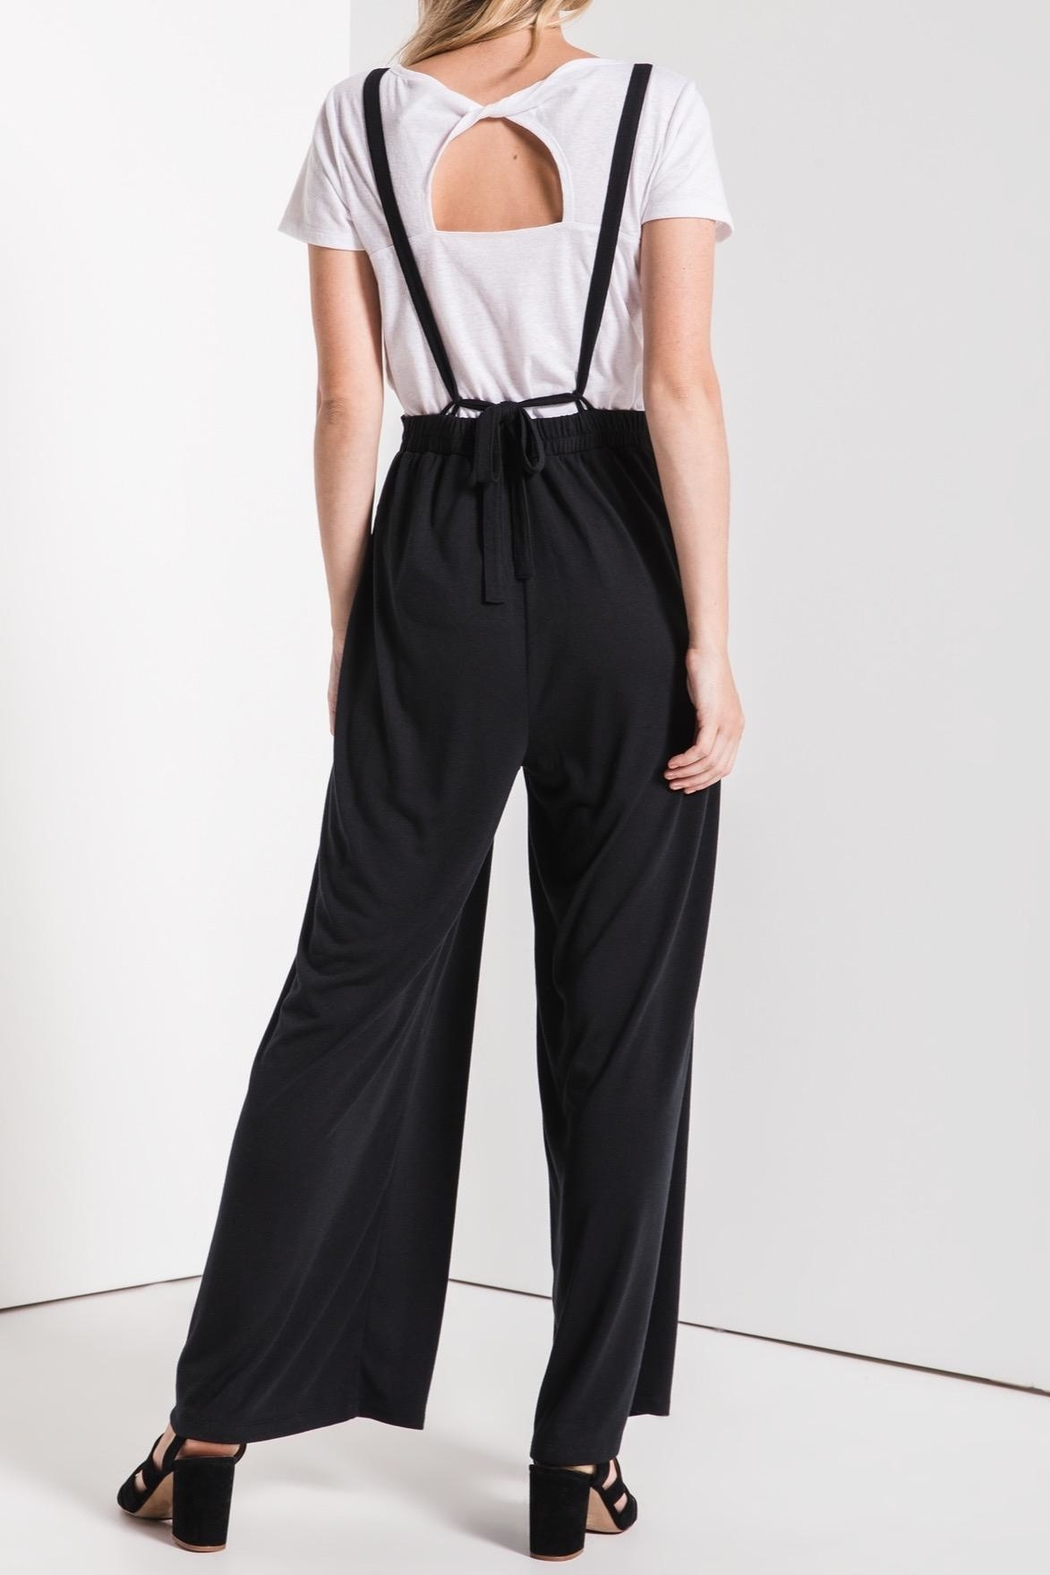 z supply Overall Styled Jumpsuit - Front Full Image